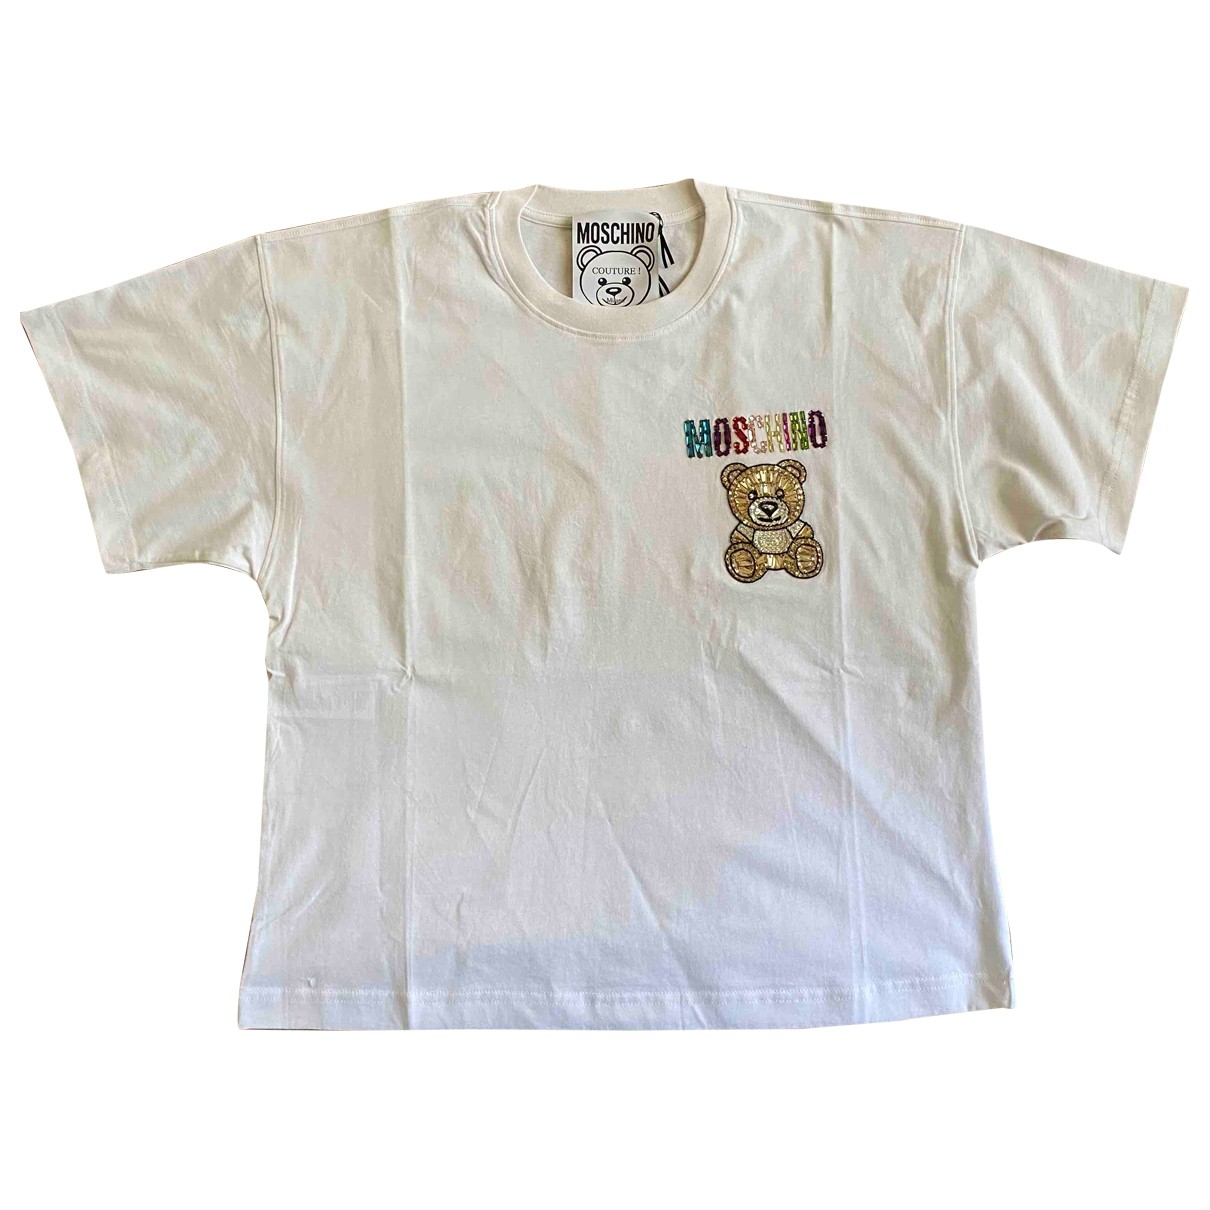 Moschino \N White Cotton  top for Women 40 IT